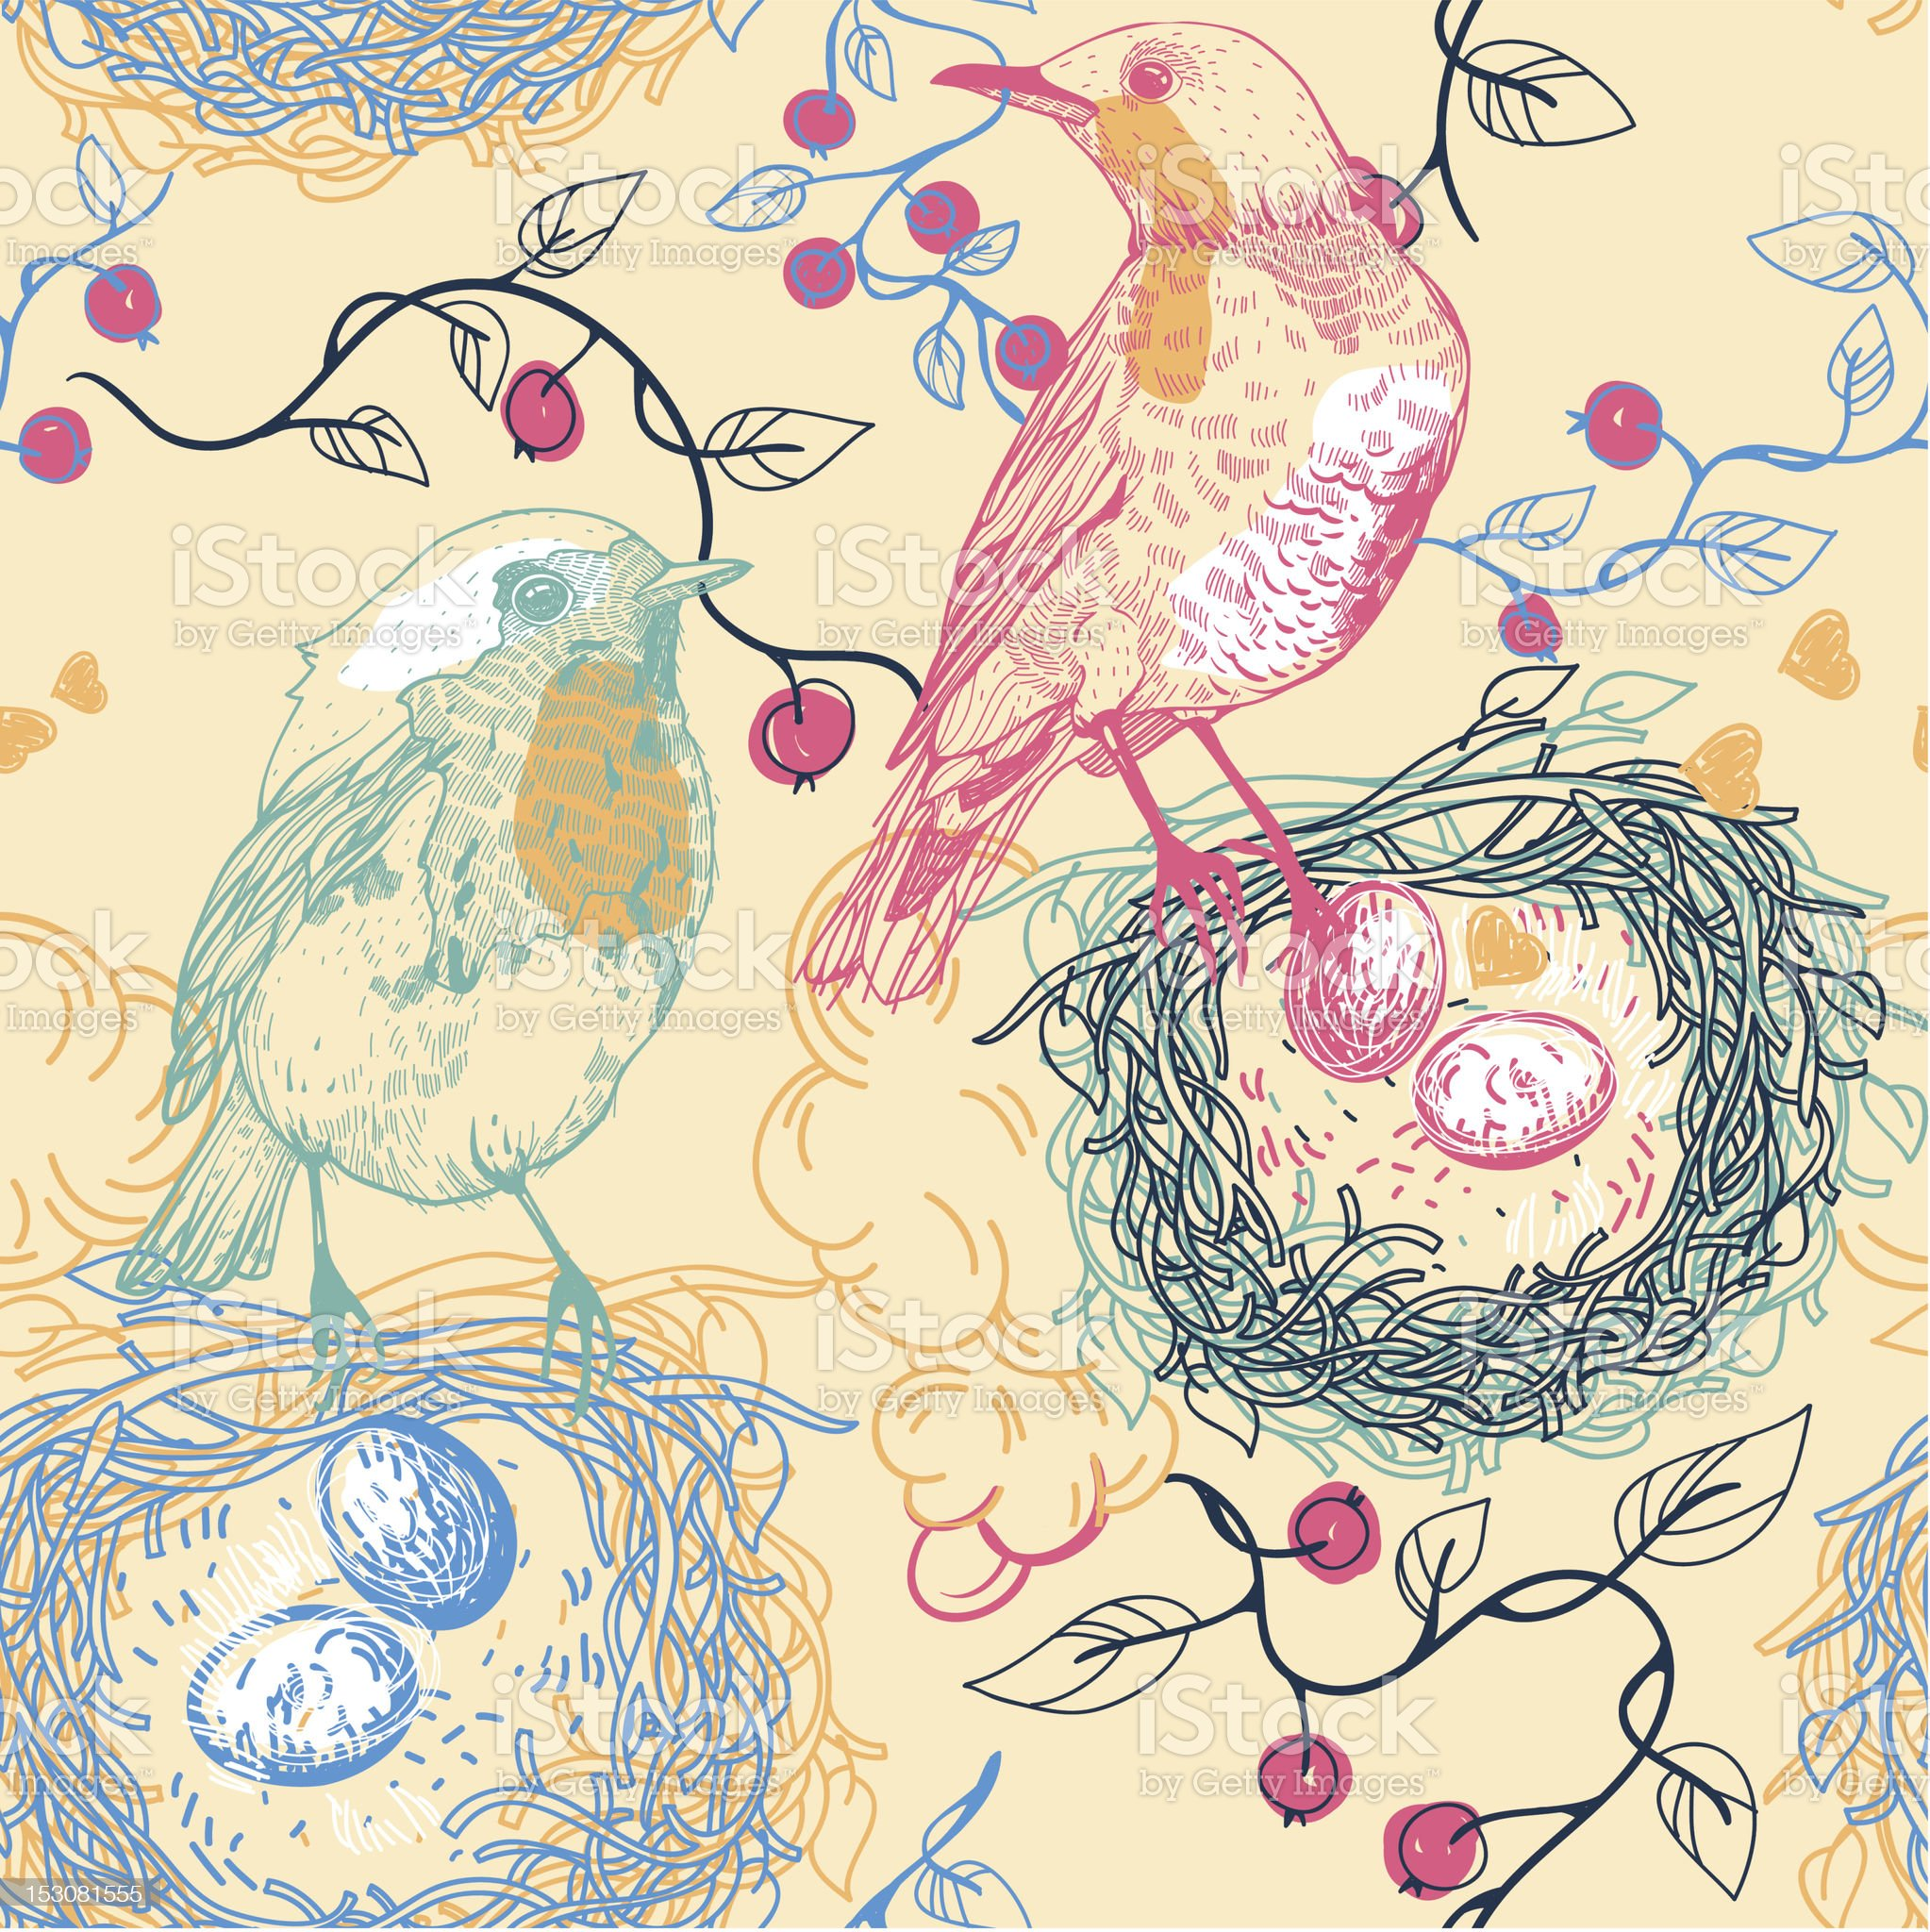 vector seamless pattern with birds and nests royalty-free stock vector art